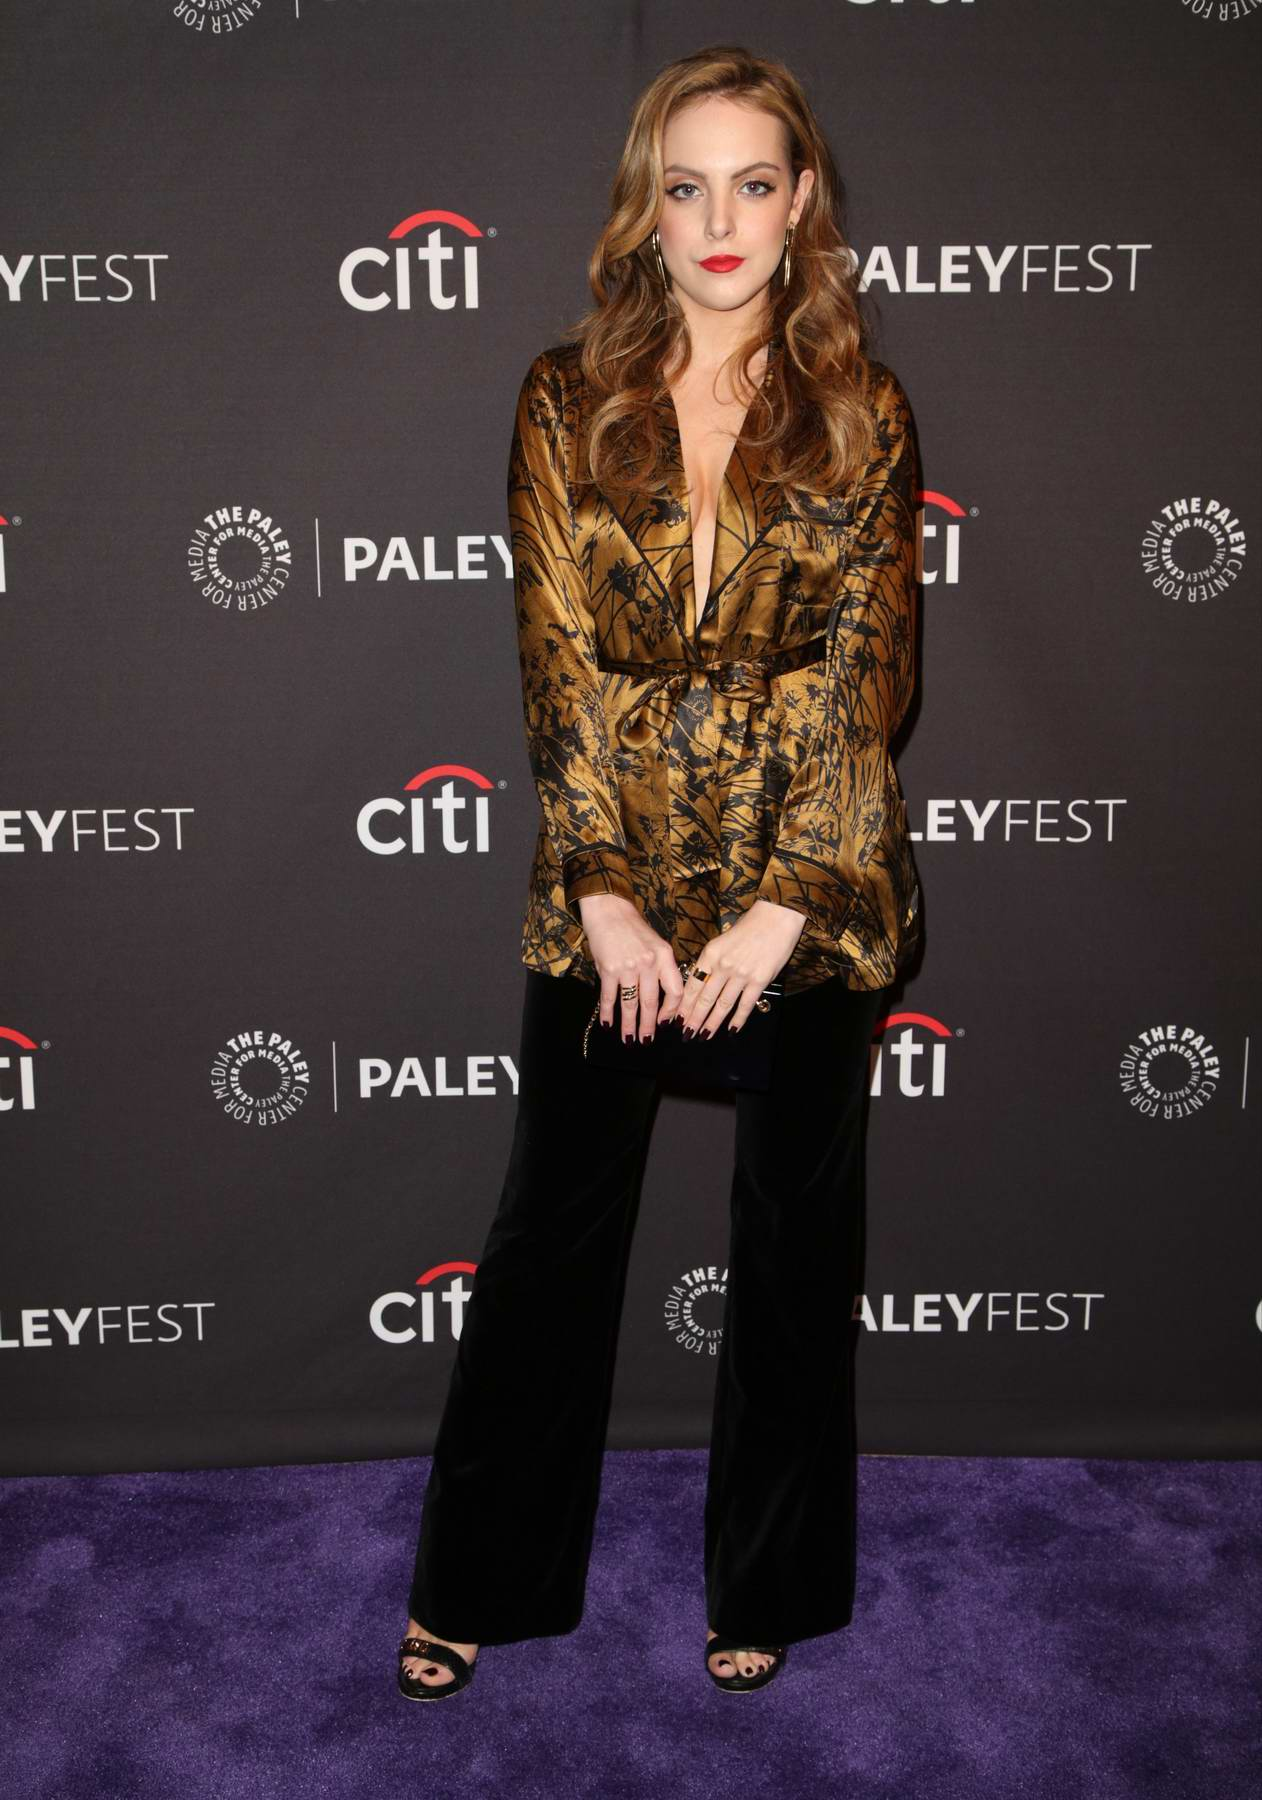 Elizabeth Gillies at The Paley Center for Media to promote her TV show Dynasty in Beverly Hills, Los Angeles